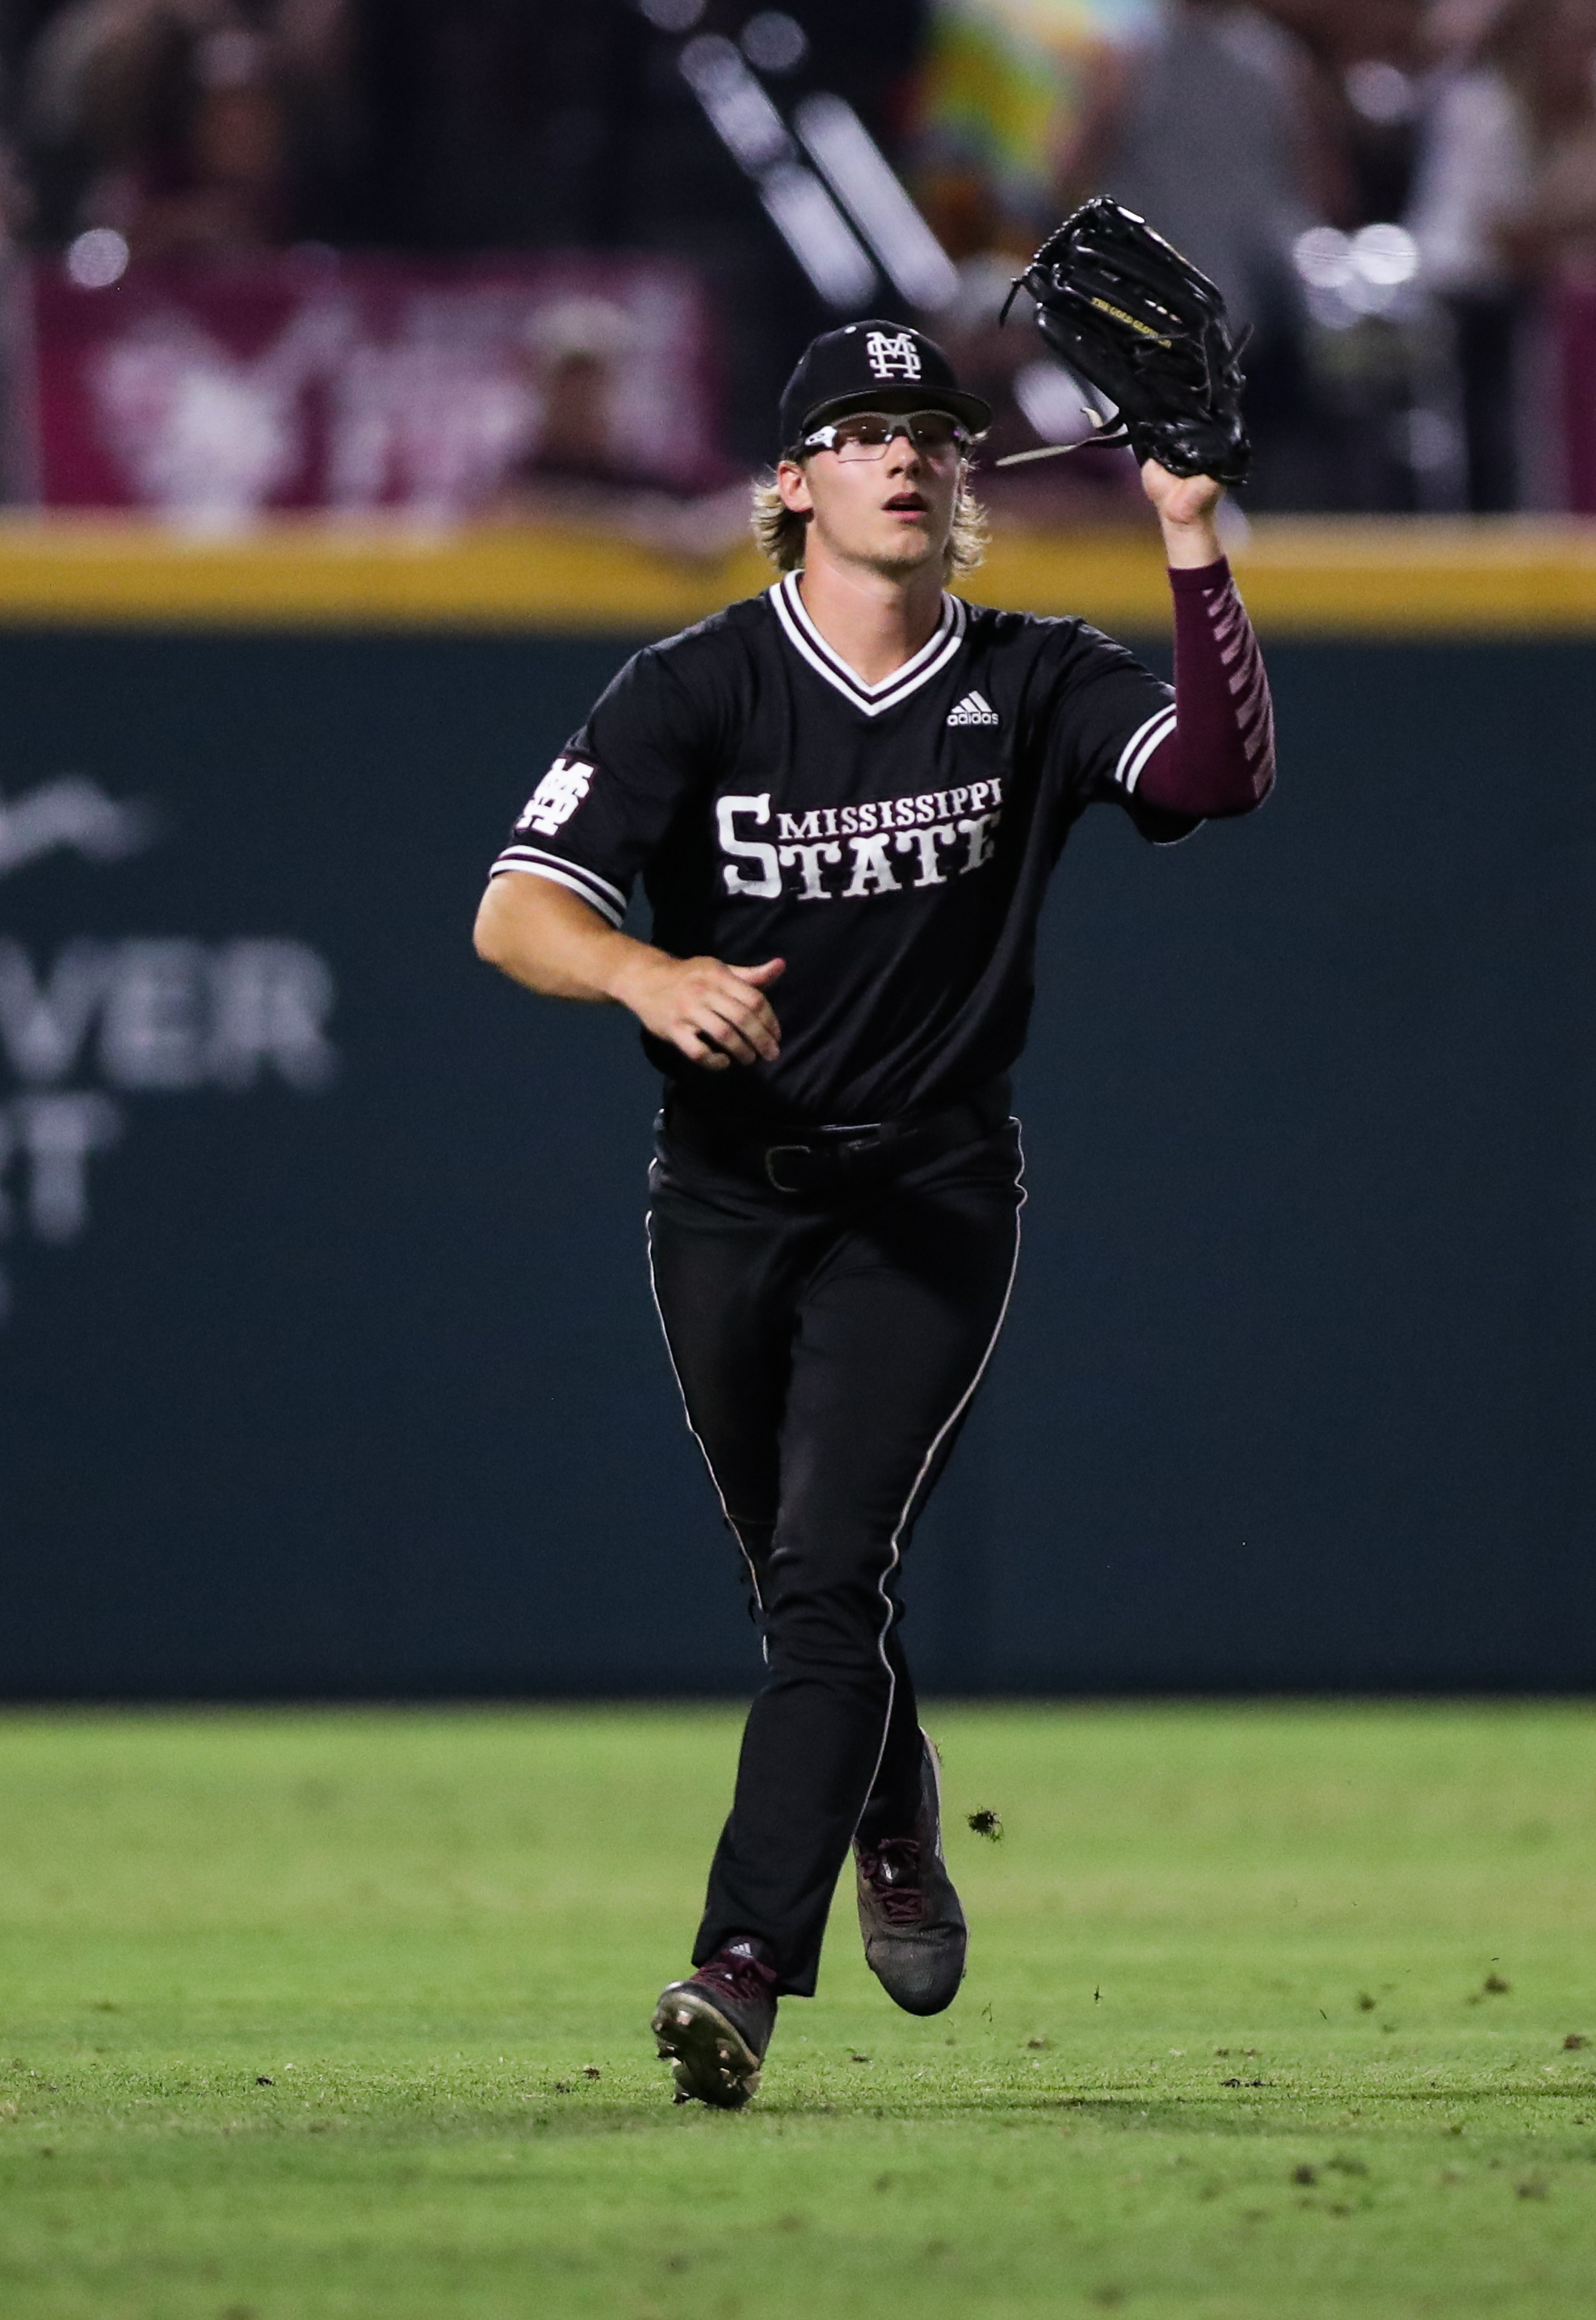 Photo by Aaron Cornia, courtesy of Mississippi State Athletics